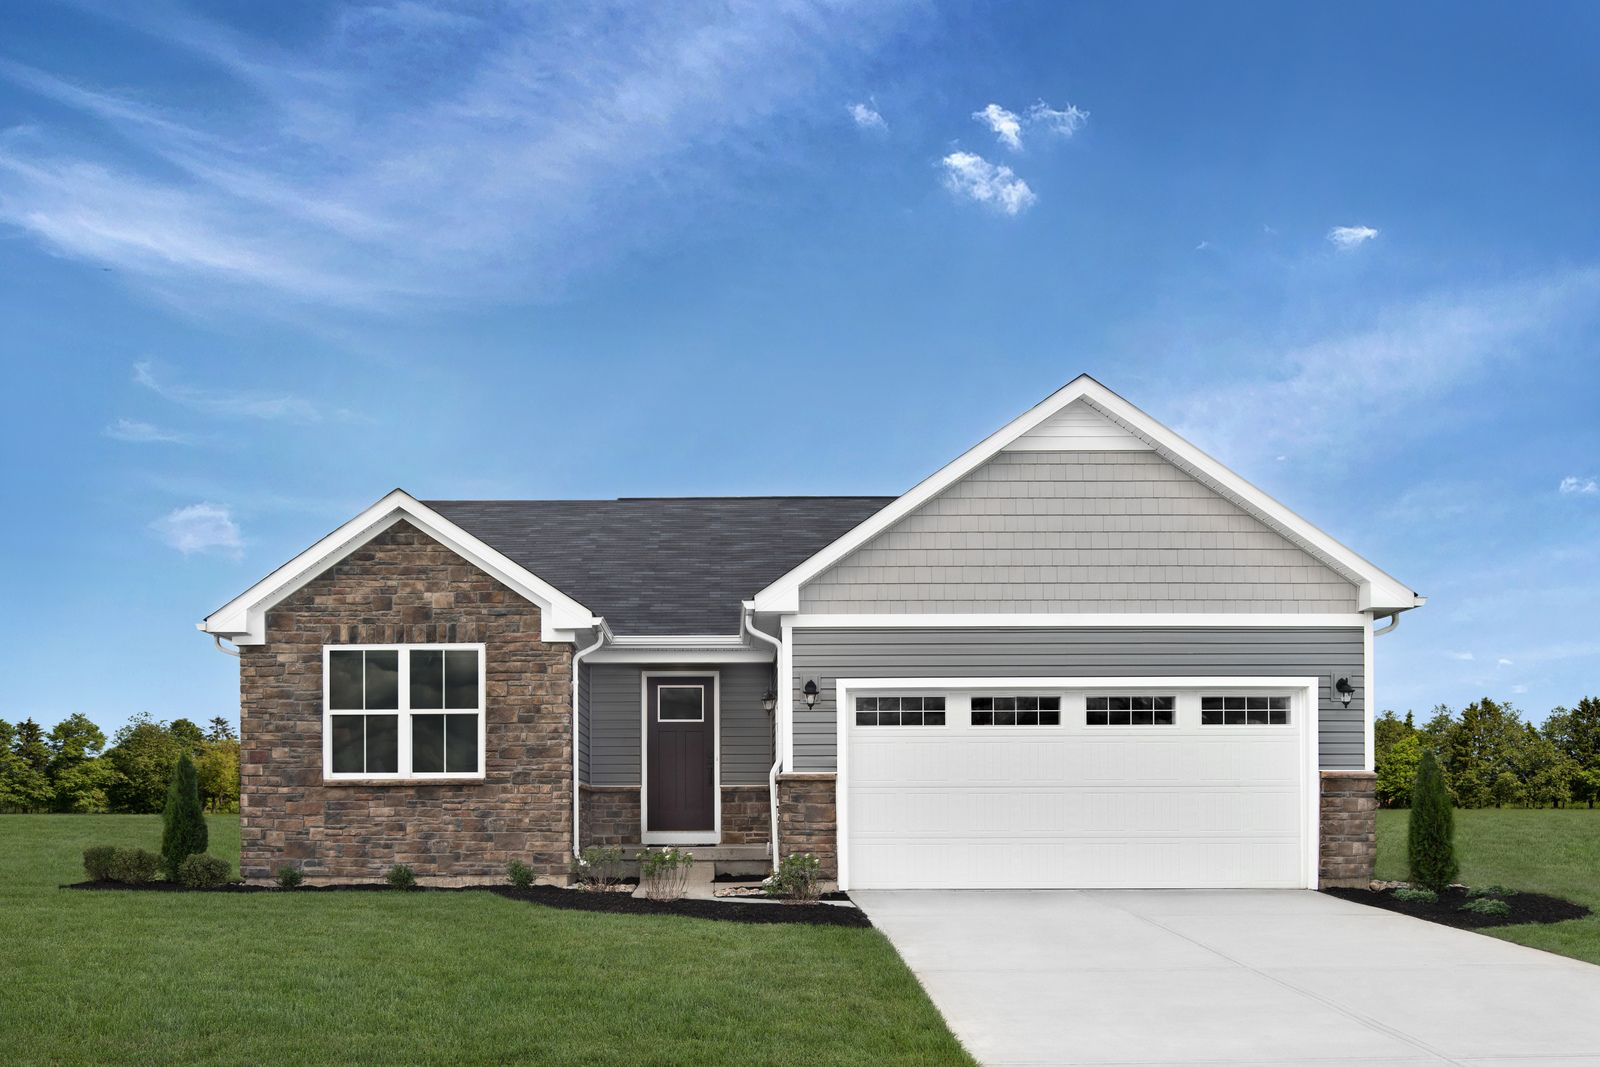 SAWYERS MILL RANCHES GRAND OPENING:New ranches in Franklin Twp. with low taxes and included lawn care and snow removal! Fences permitted on scenic, pond-view homesites. From the $190s.Click here to schedule your visit today.